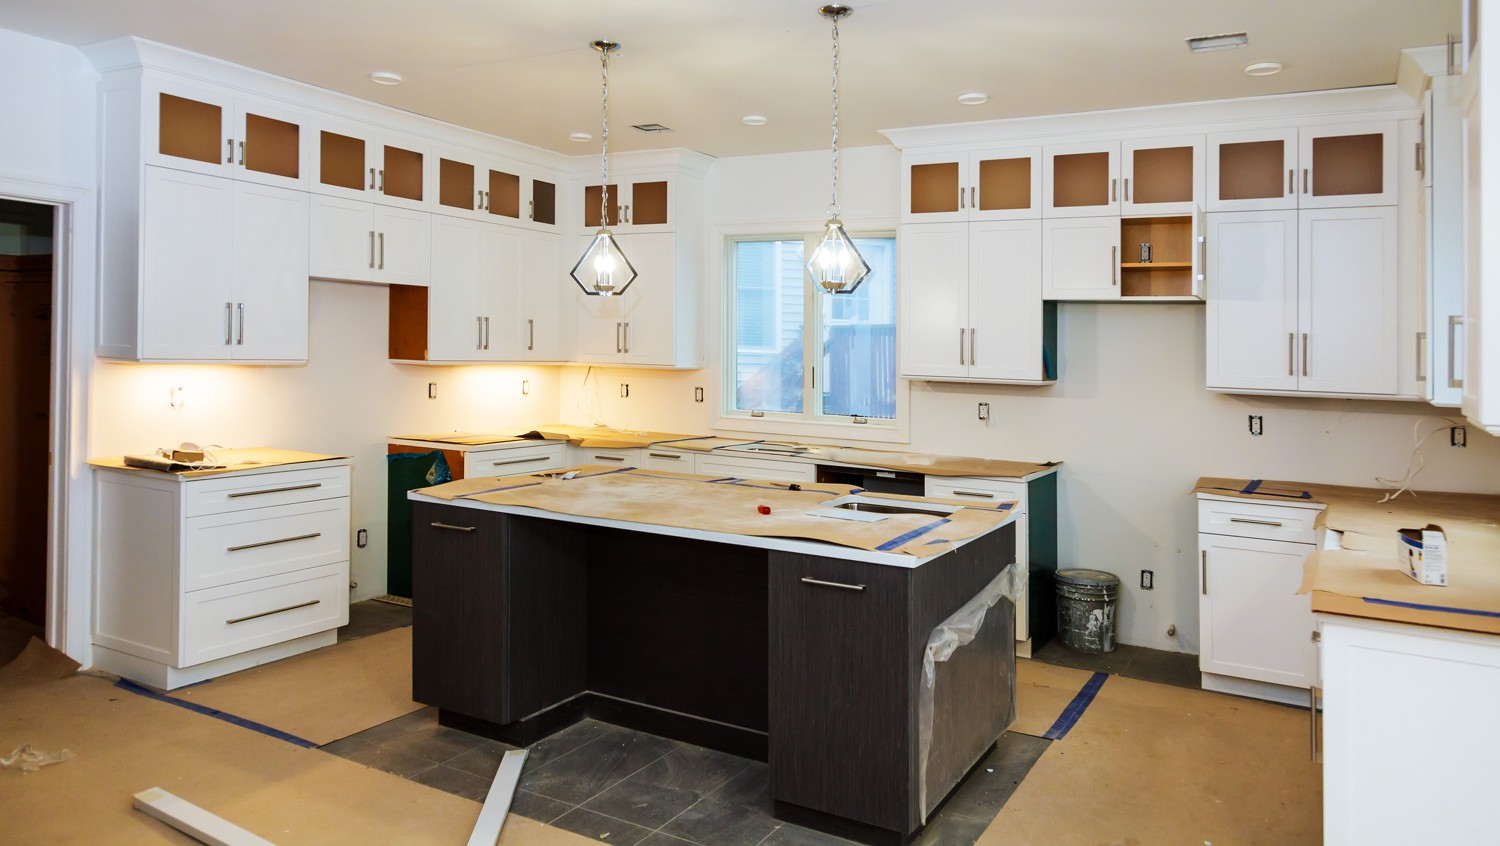 A kitchen with minor upgrades to increase home value.